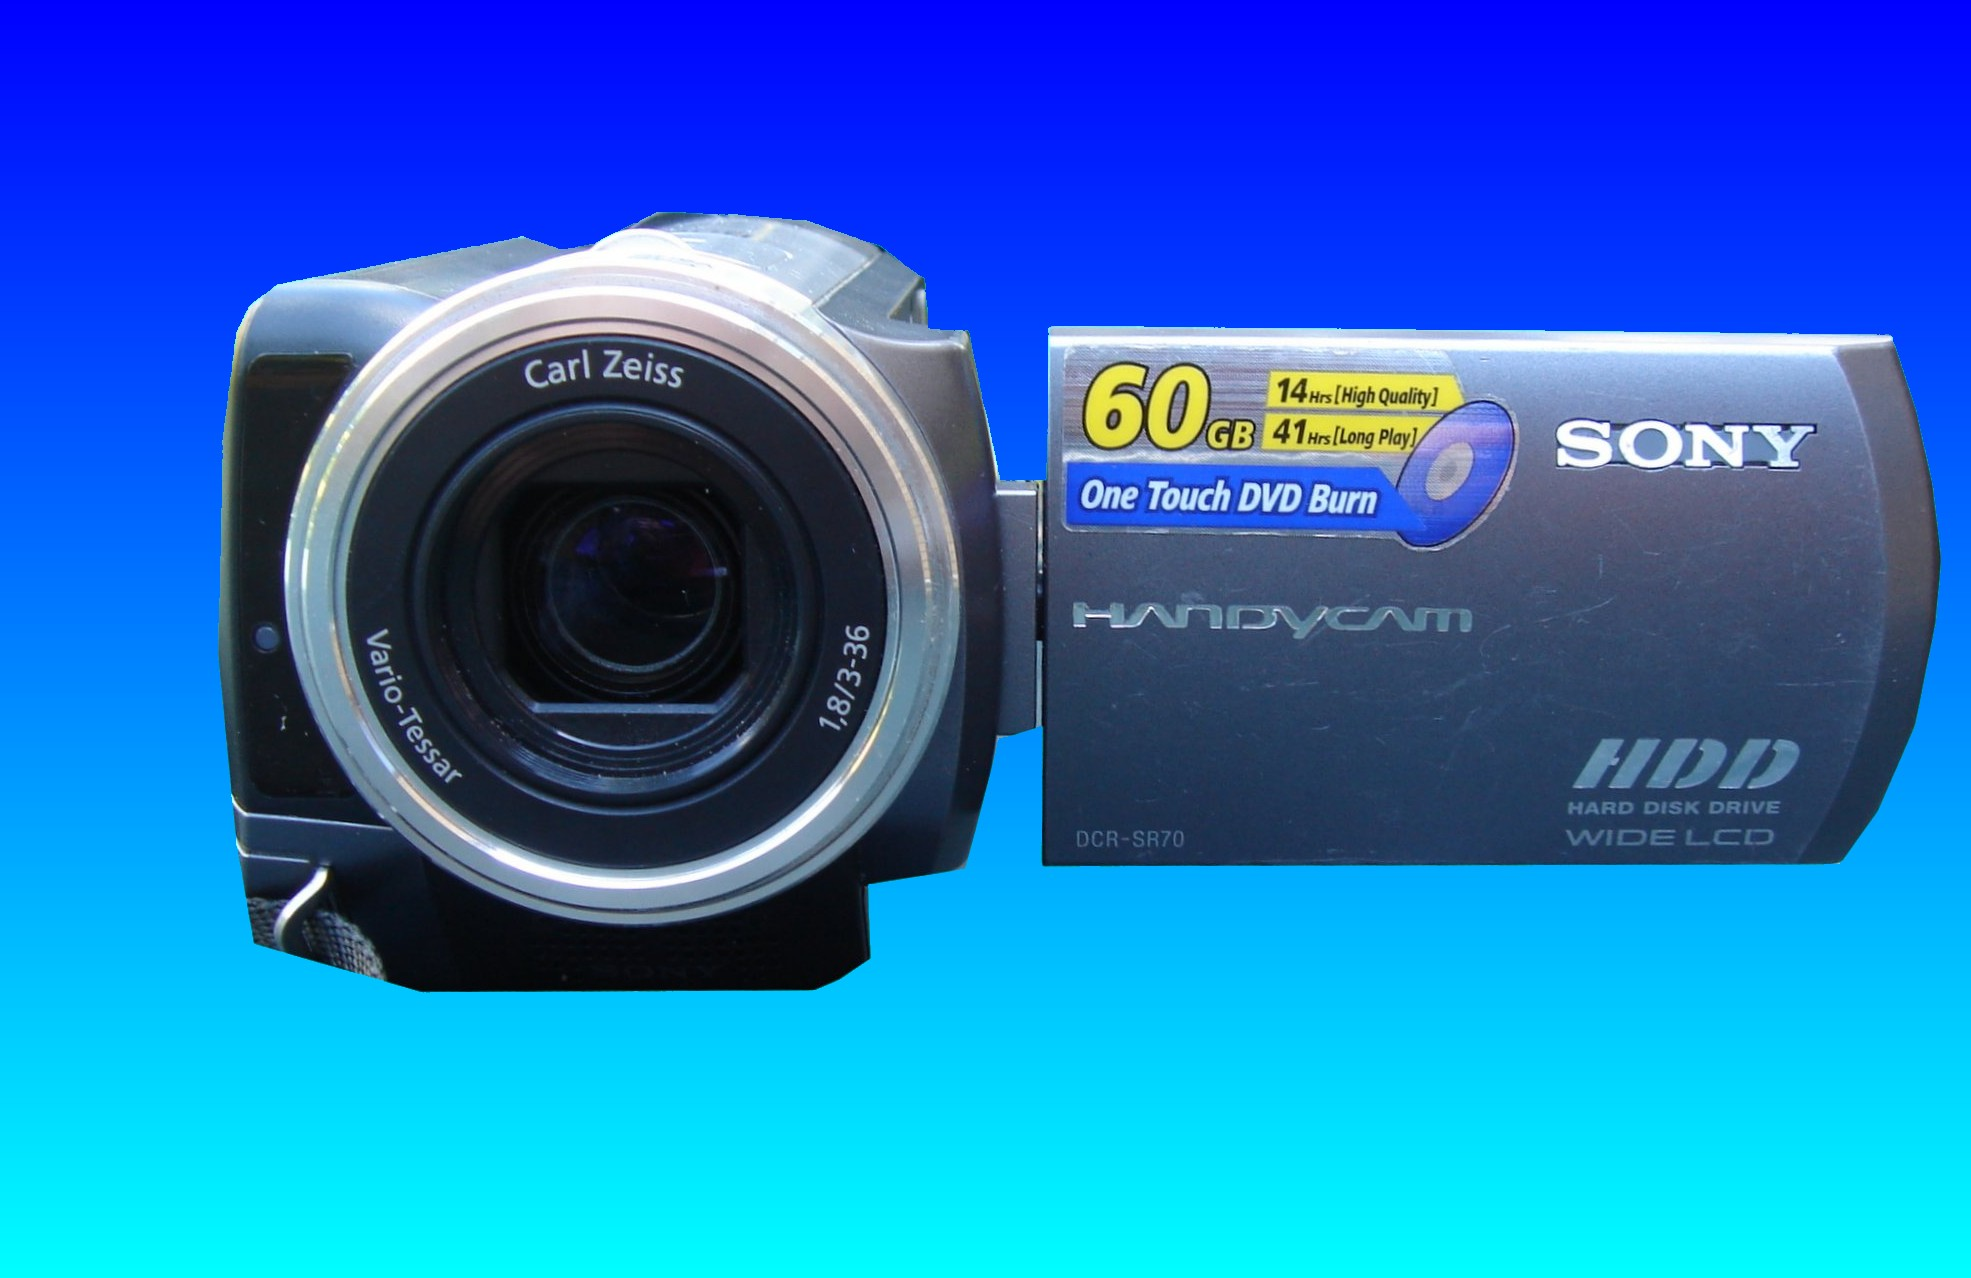 A Sony Handycam DCR-SR70 which was missing the image icons from the screen showing the video clips that were created on the hard disk. Accidental deletion by the client meant the camcorder needed to undergo video recovery.